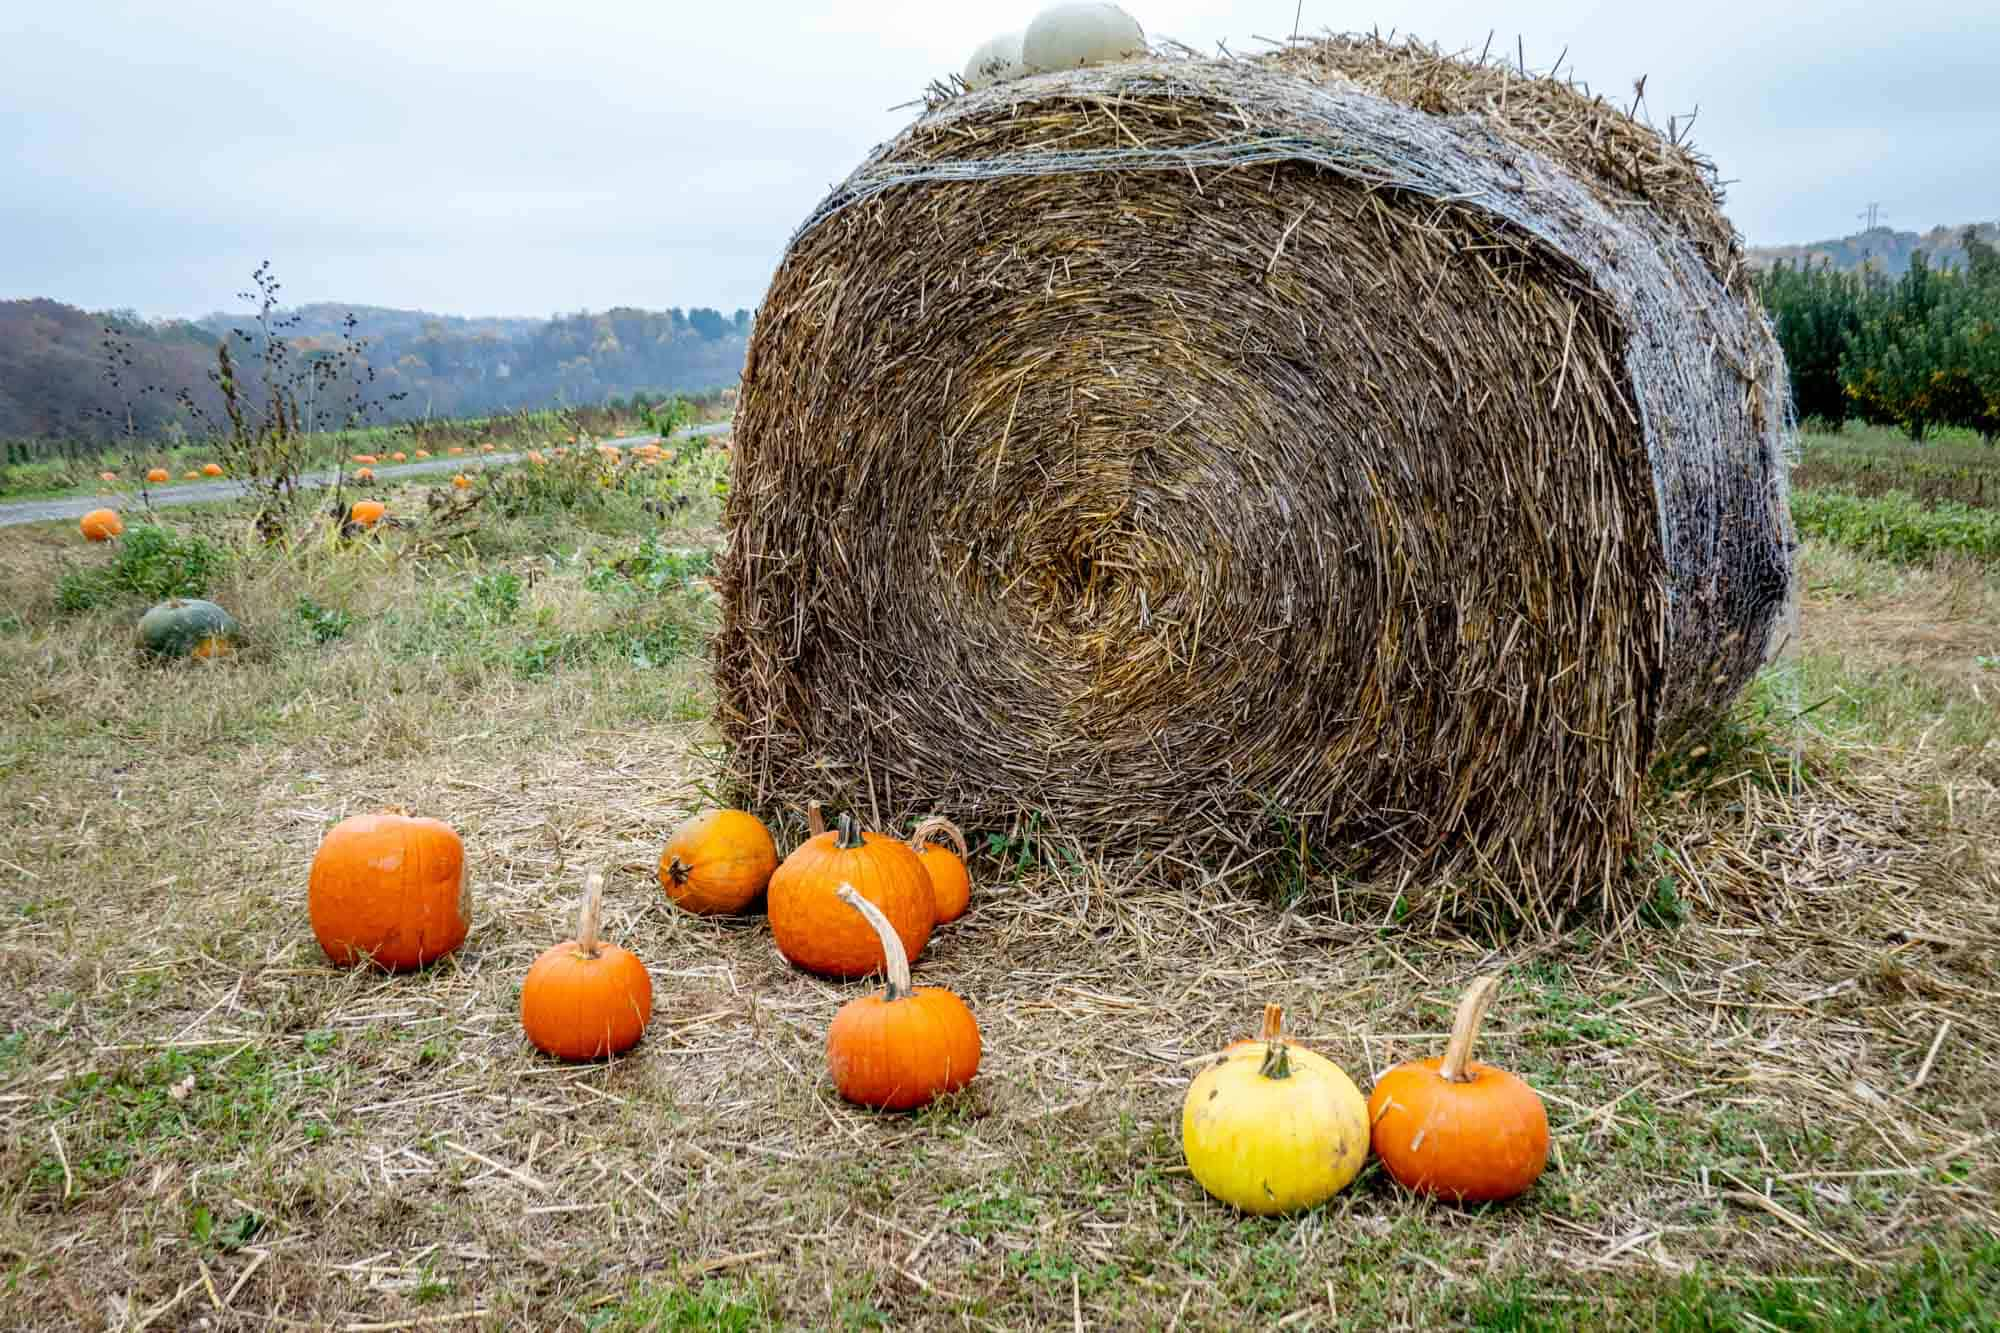 Orange and yellow pumpkins on the ground in front of a hay bale in a pumpkin patch